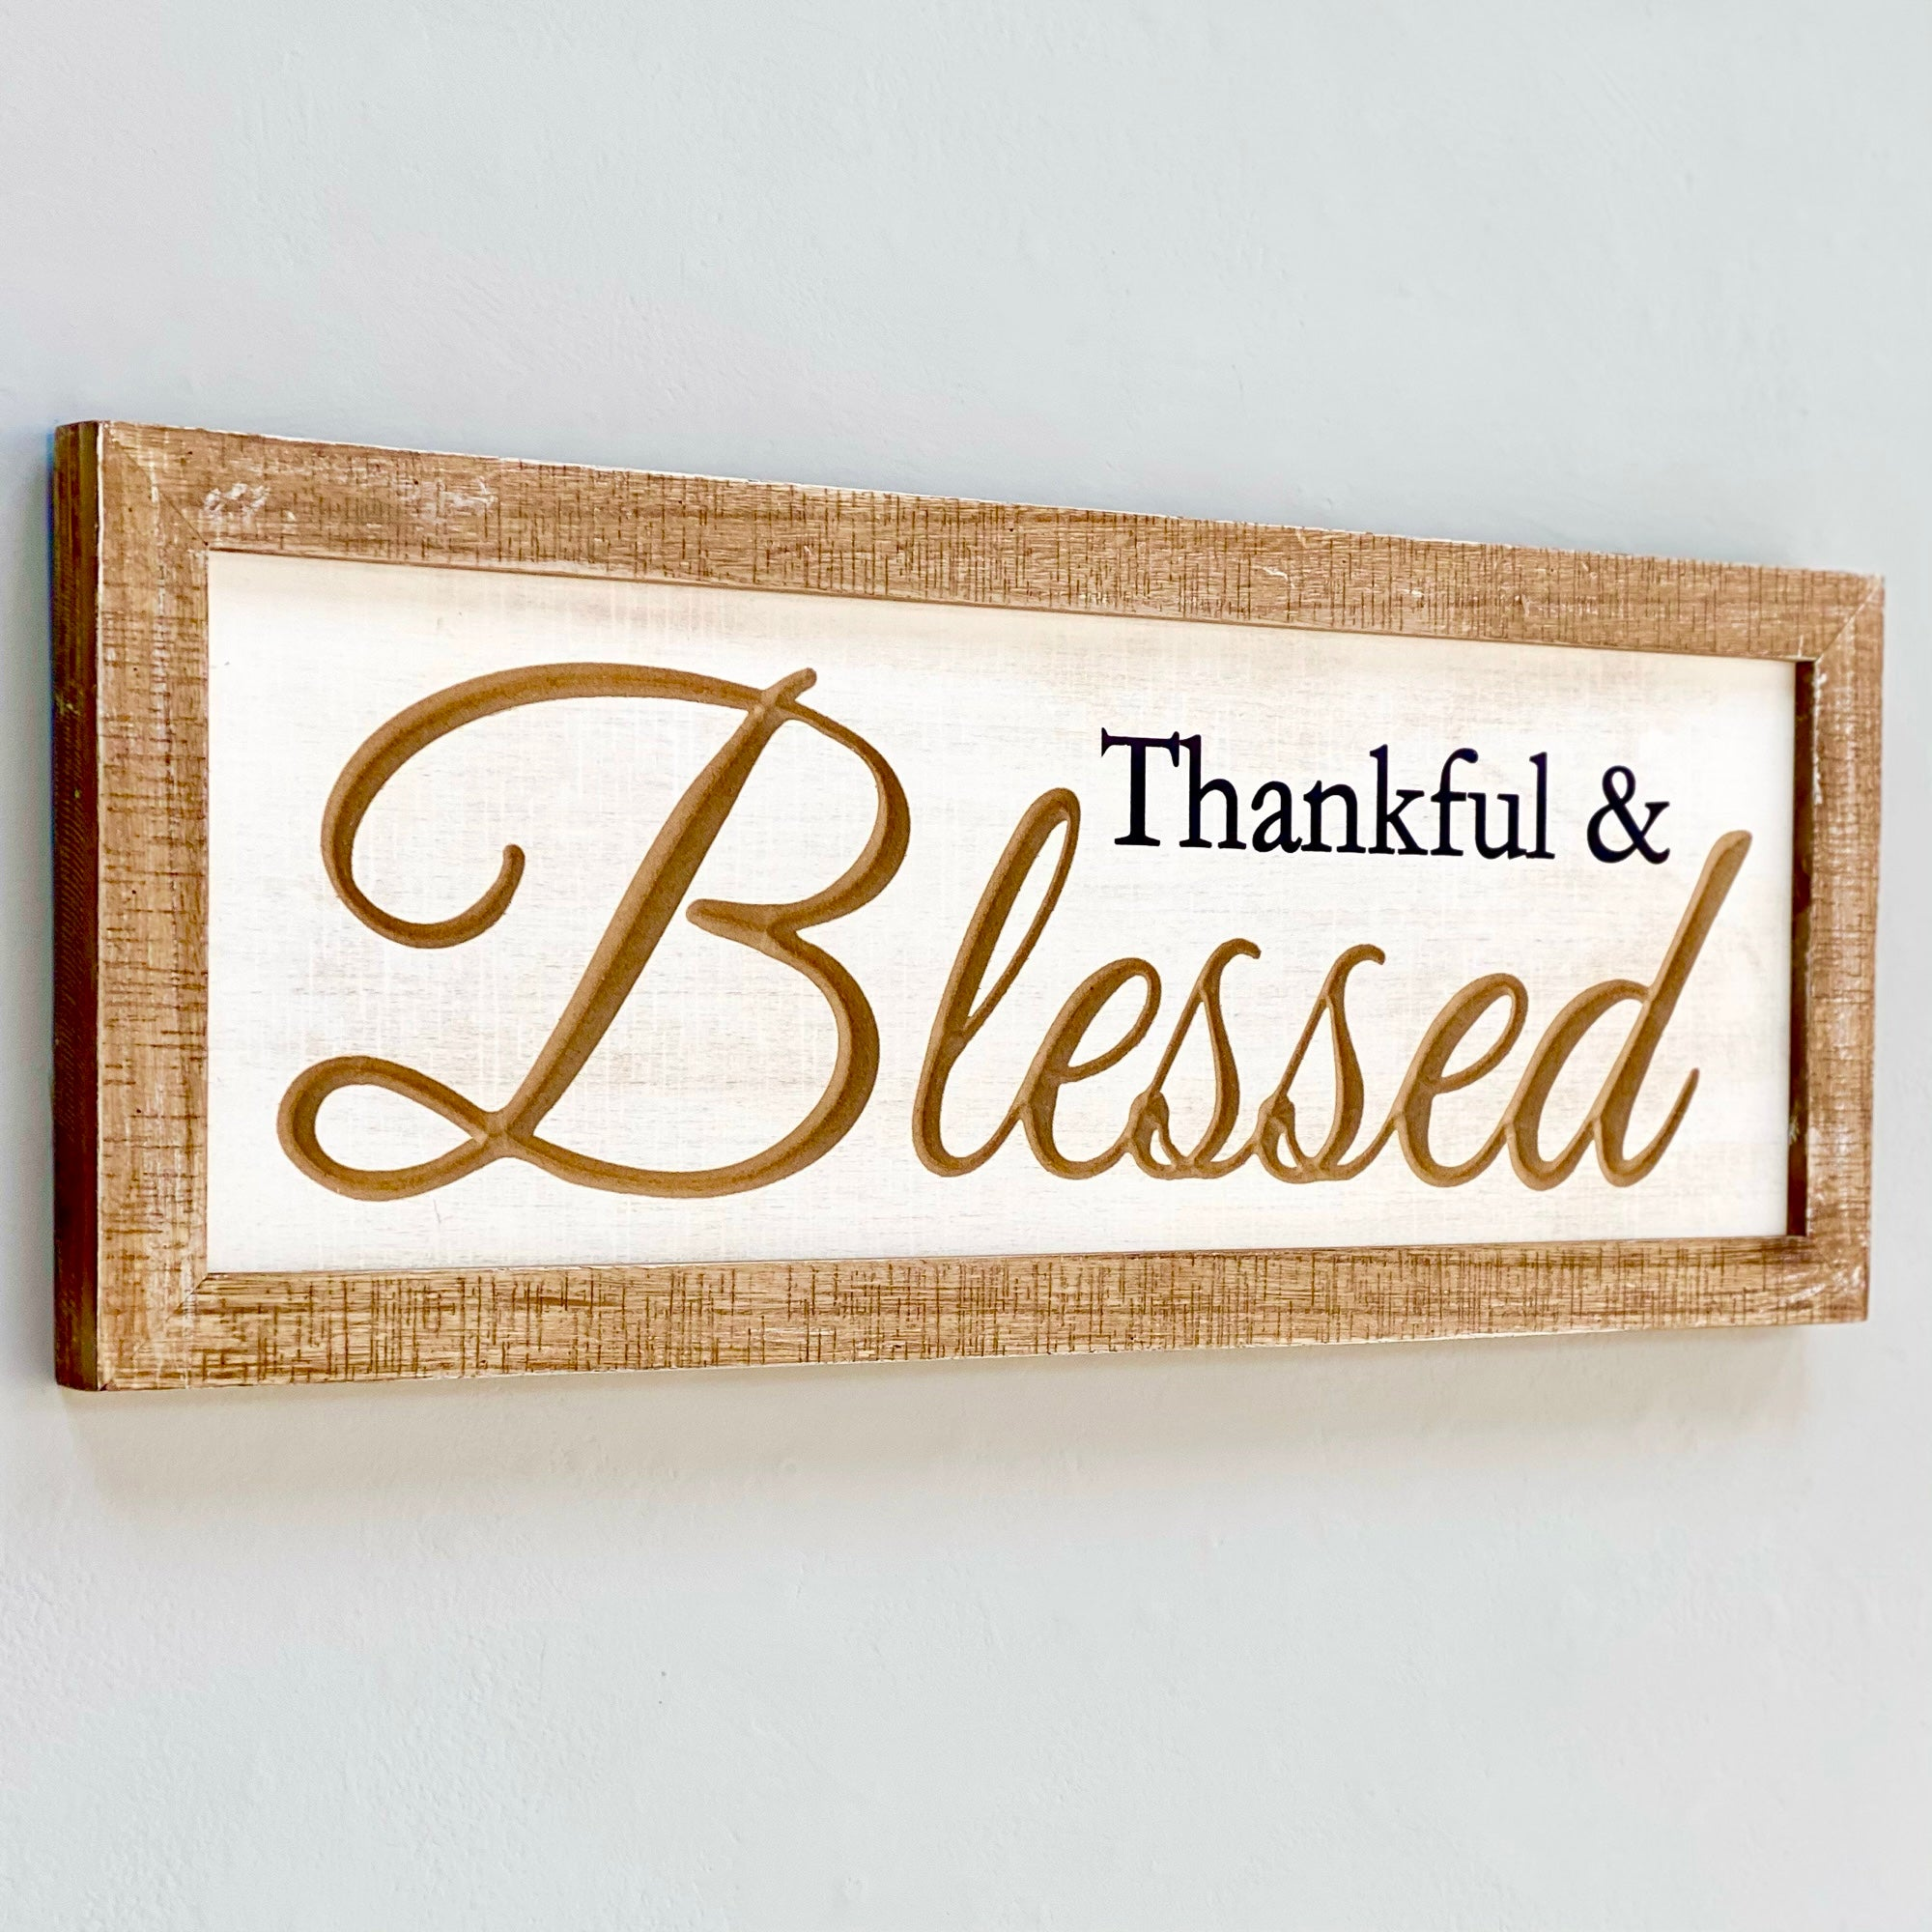 Thankful & Blessed Wooden Wall Art